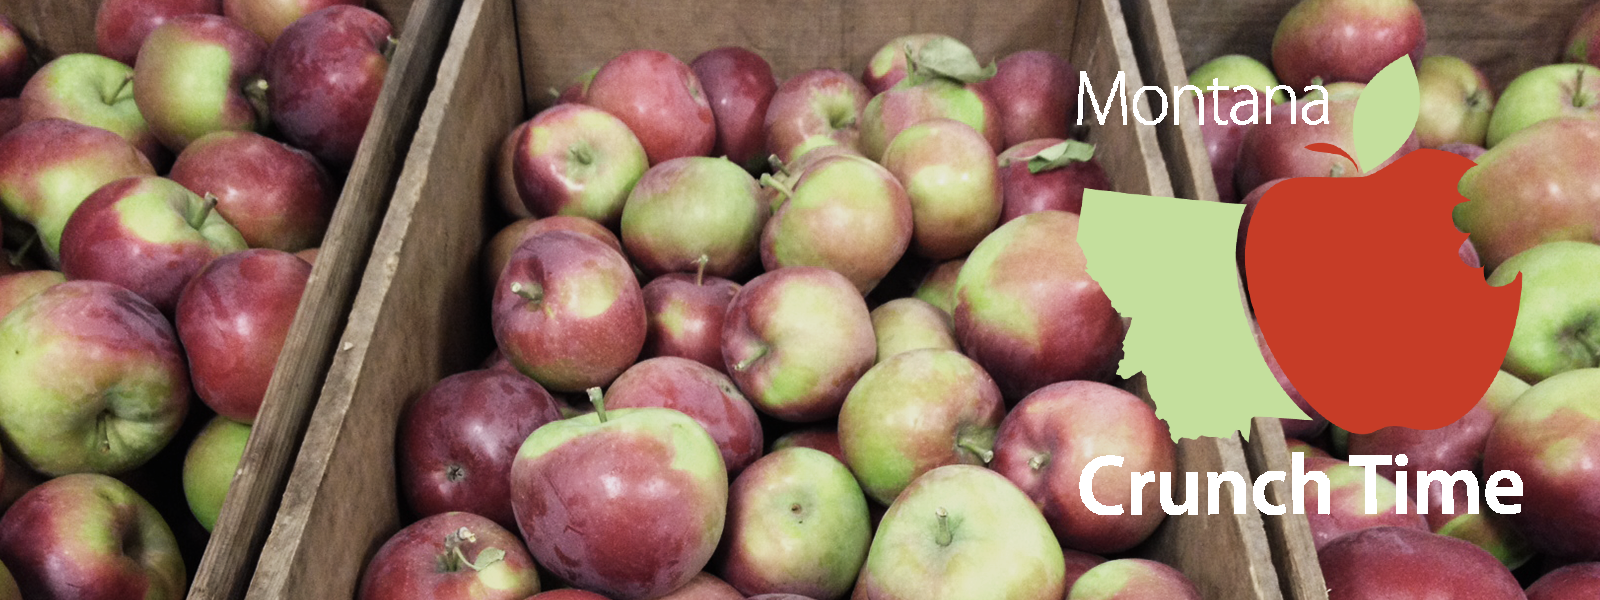 Boxes of apples with Montana Crunch Time logo